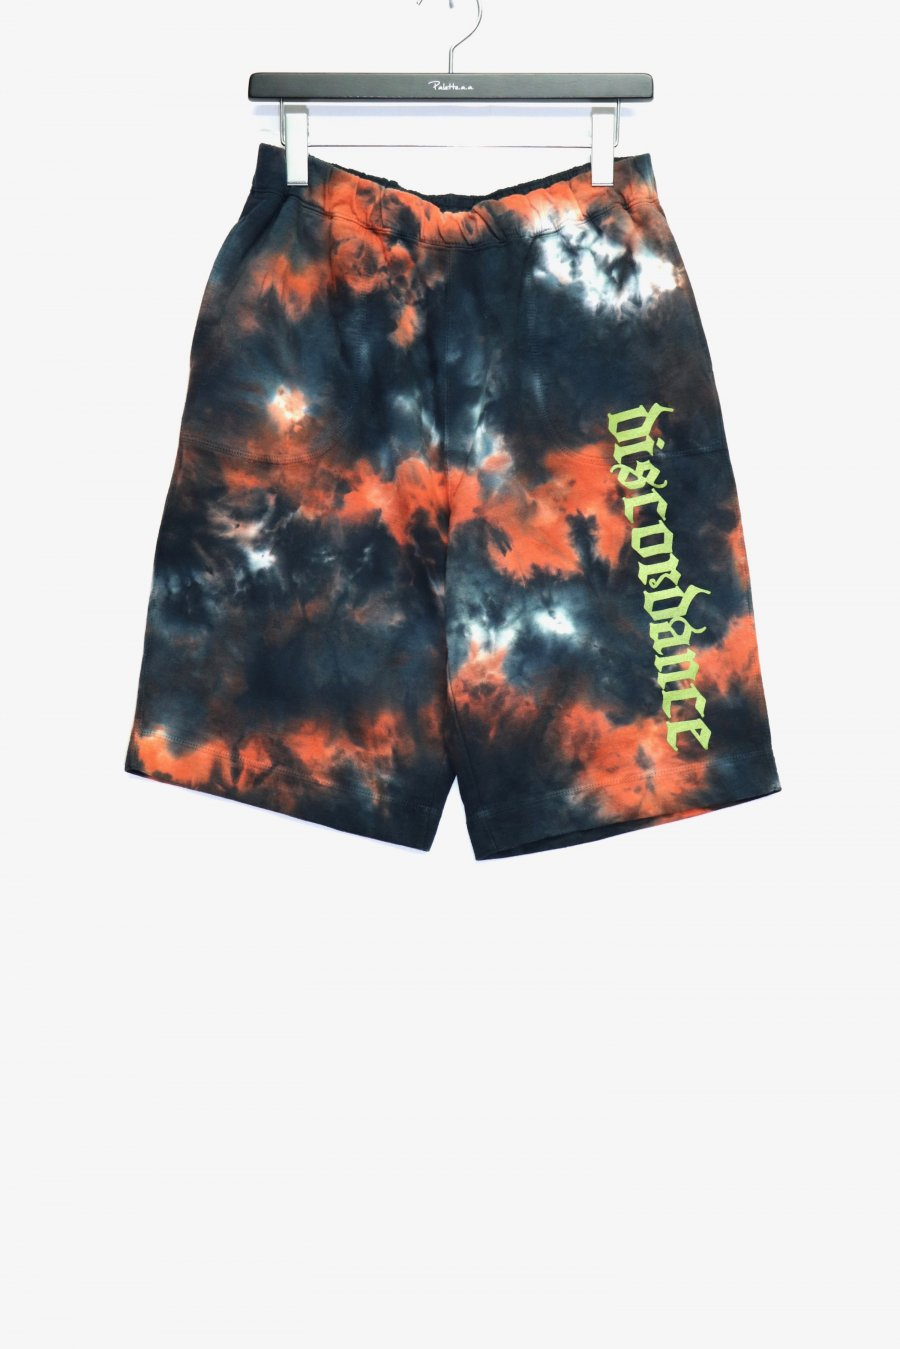 Children of the discordance  HAND DYEING & LOGO PRINT SHORTS(FIRE)<img class='new_mark_img2' src='https://img.shop-pro.jp/img/new/icons15.gif' style='border:none;display:inline;margin:0px;padding:0px;width:auto;' />